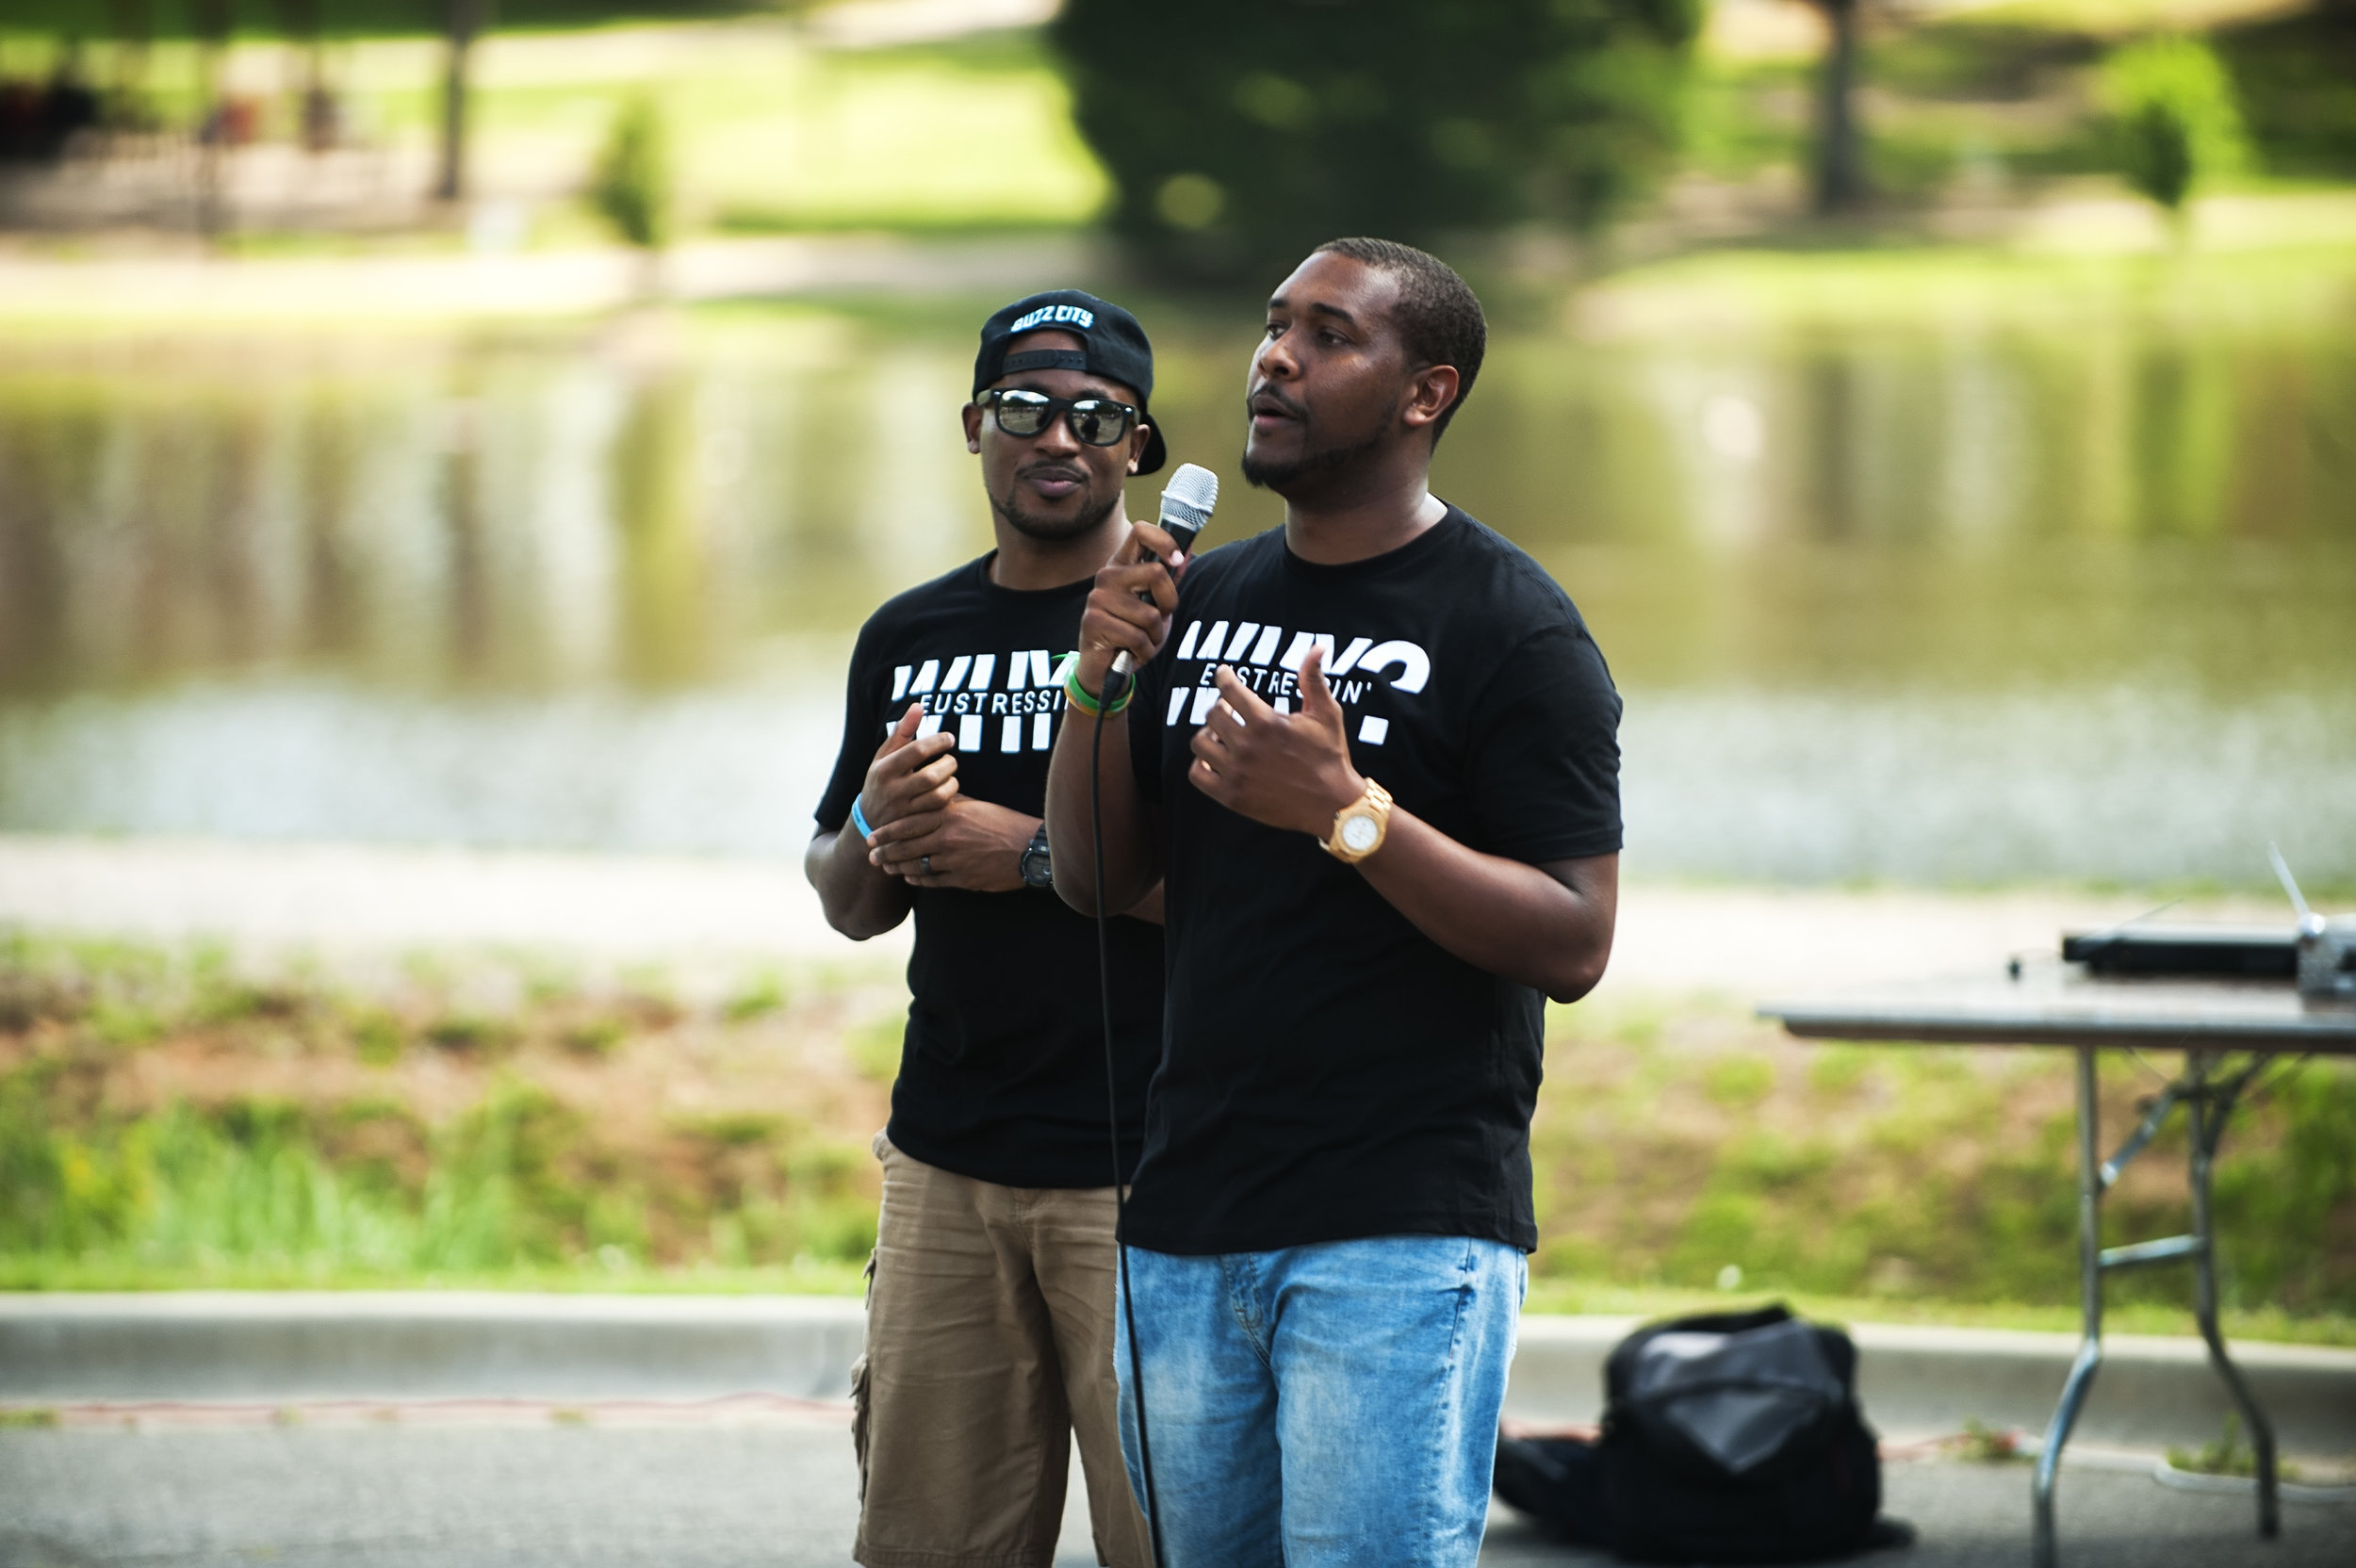 2nd Annual Let's Talk About It Mental Health Awareness Walk @ Park Rd Park 5-20-17 by Jon Strayhorn 102.jpg